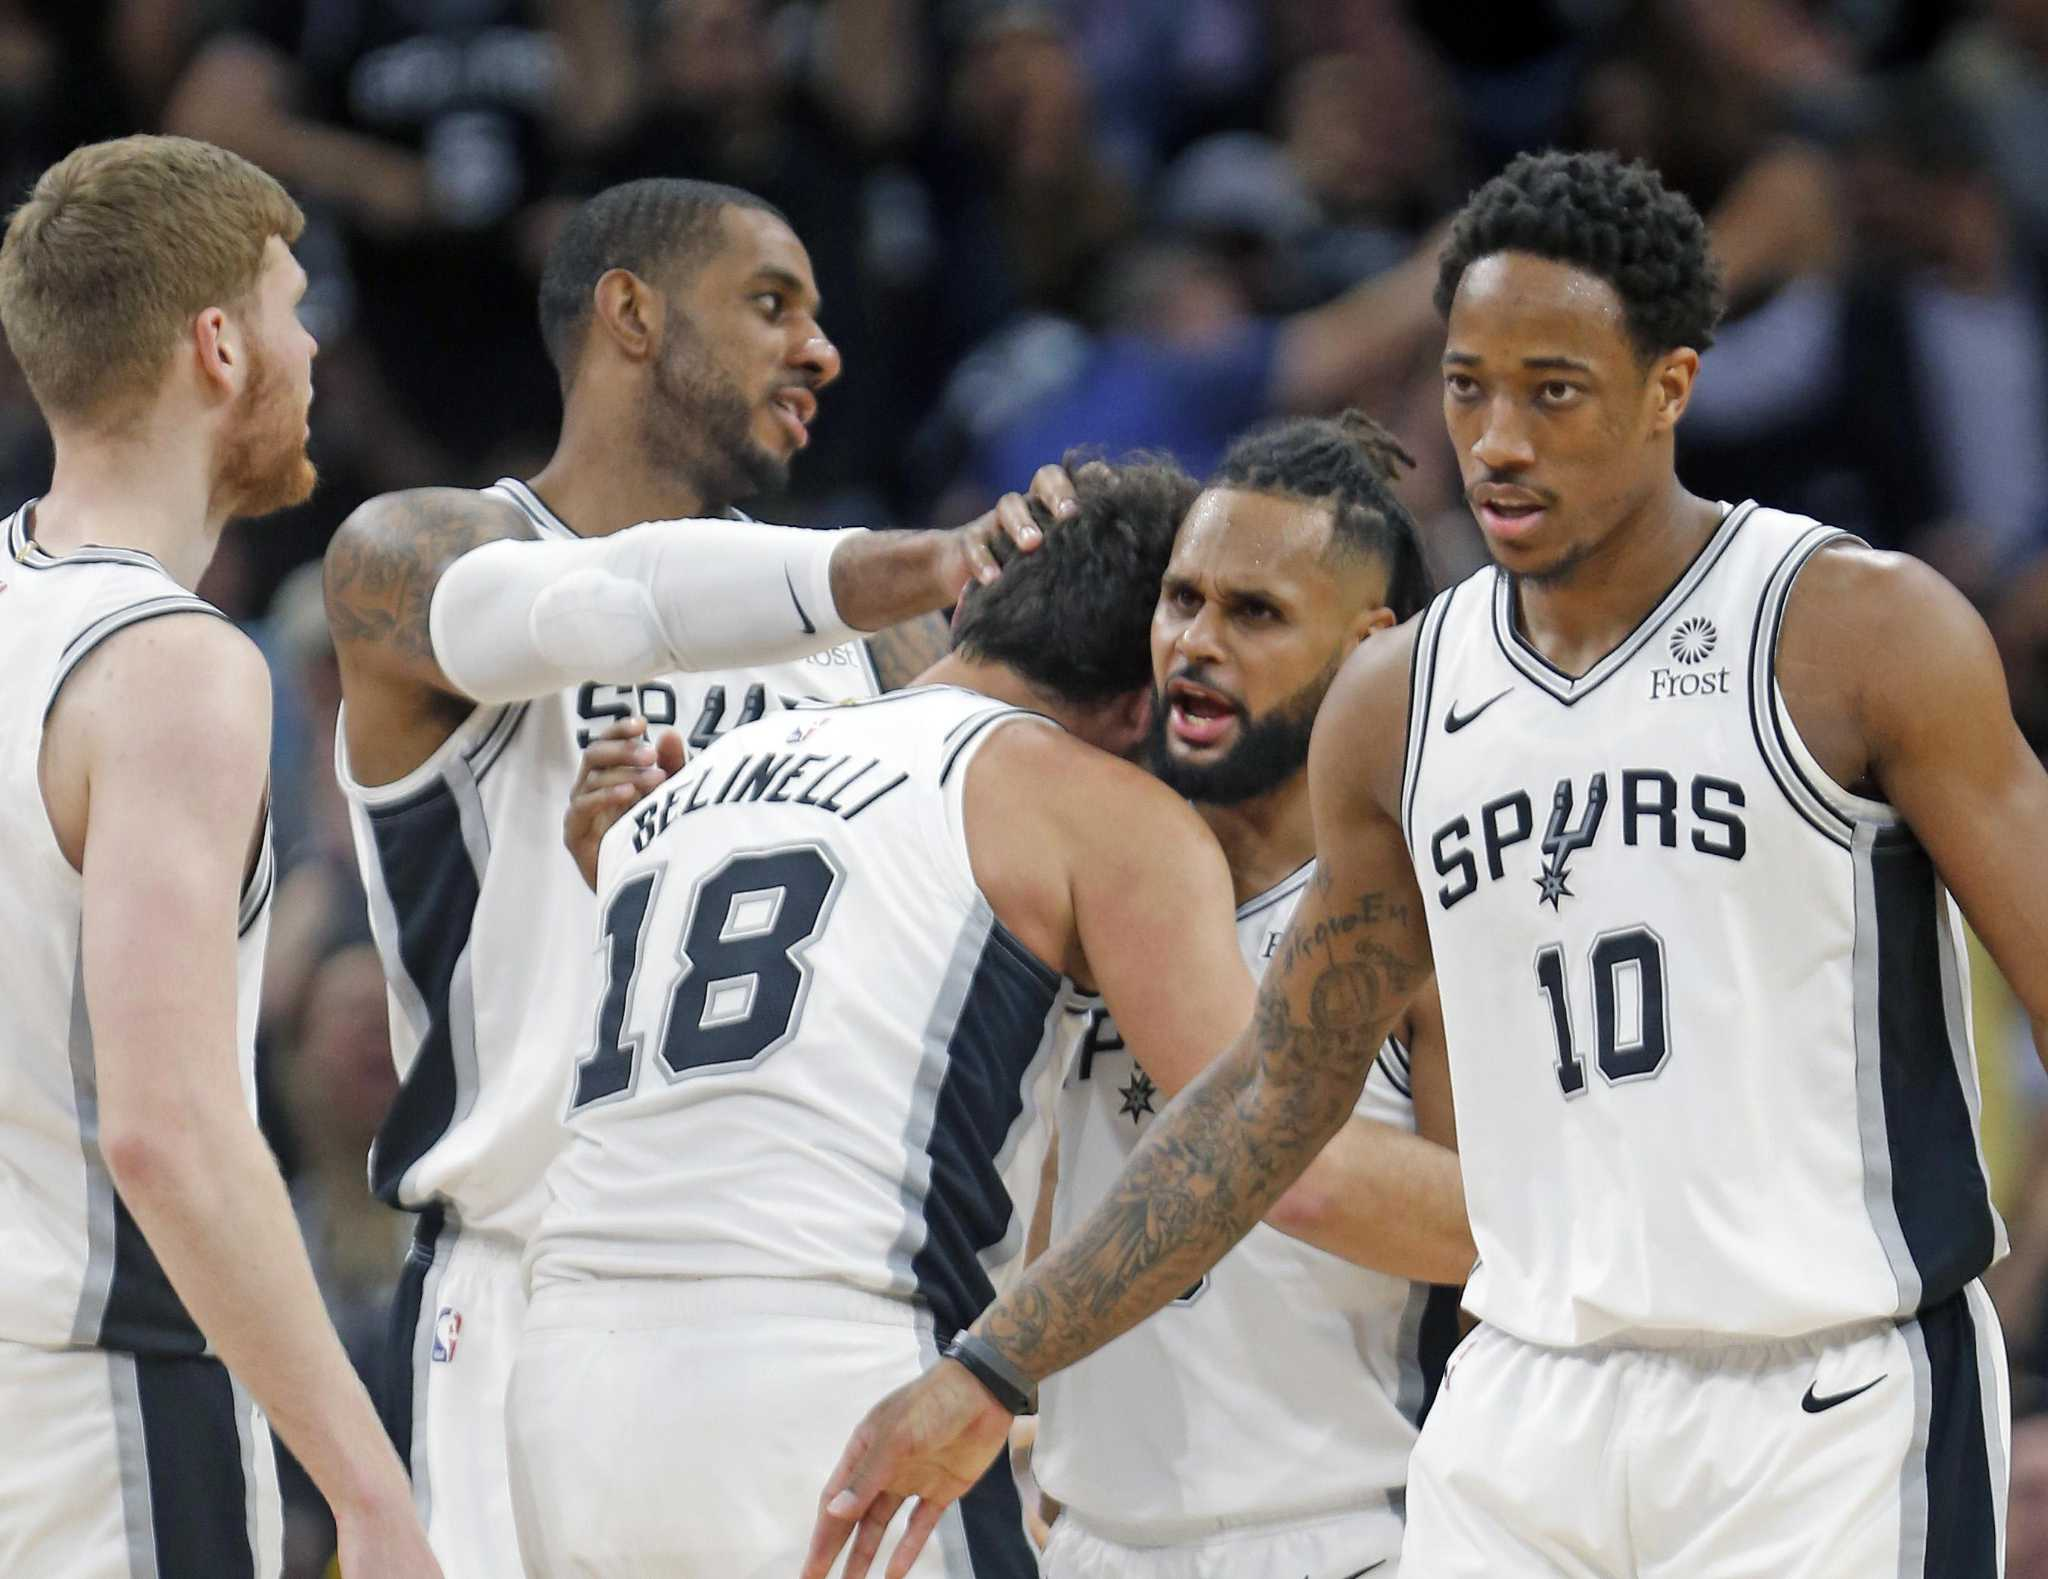 After felling Warriors, Spurs' mission is to avoid them in playoffs